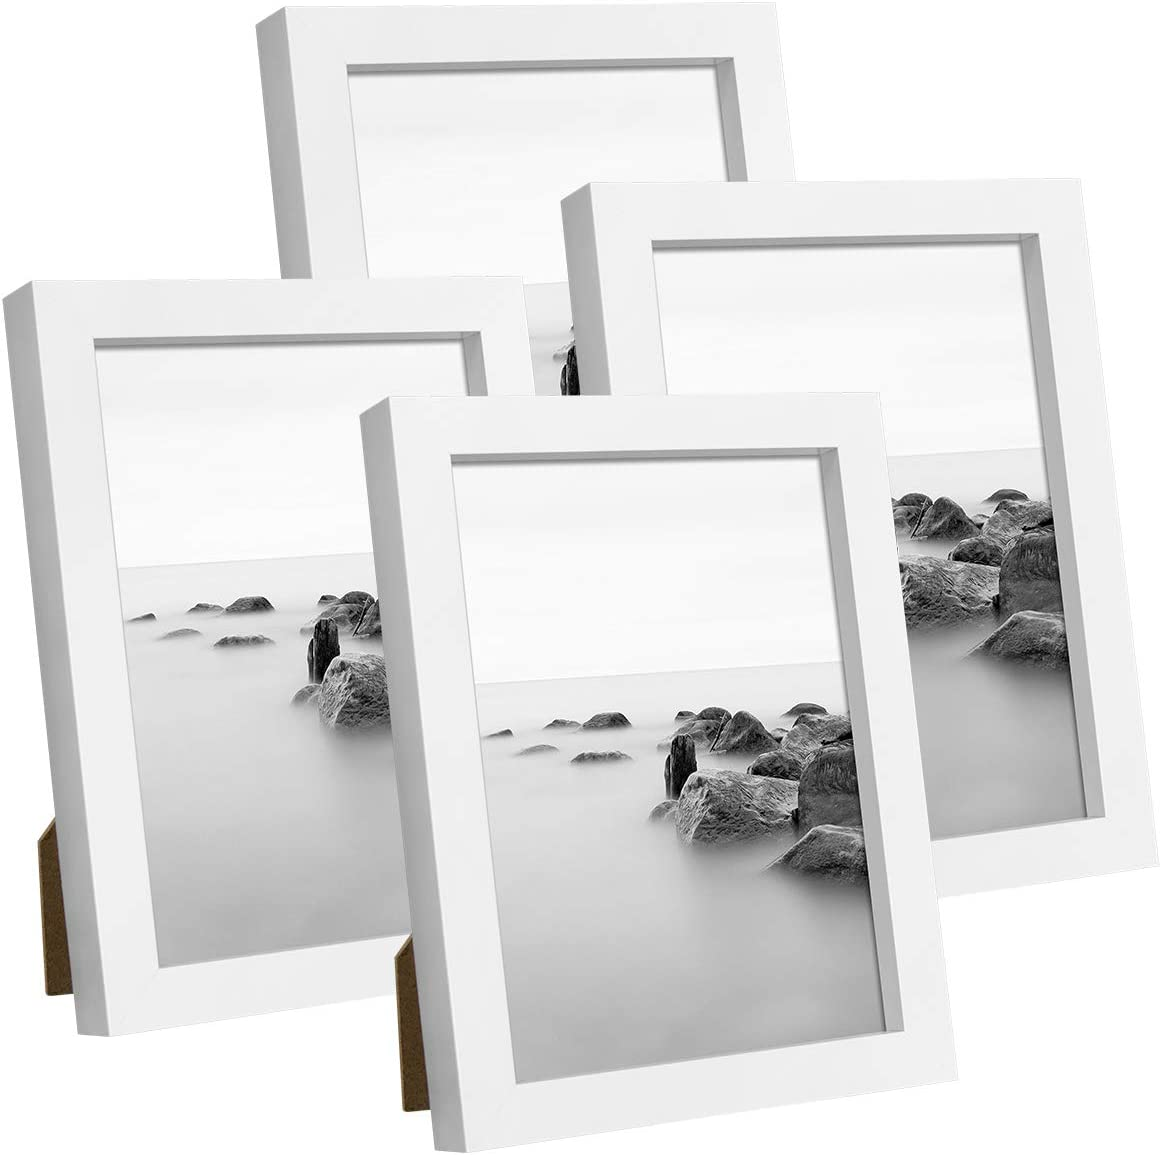 Real Glass Front for Tabletop or Mount Q.Hou 7x5 Inch White Picture Photo Frame 3 Packs 005UK-QH-PF5X7-WHT